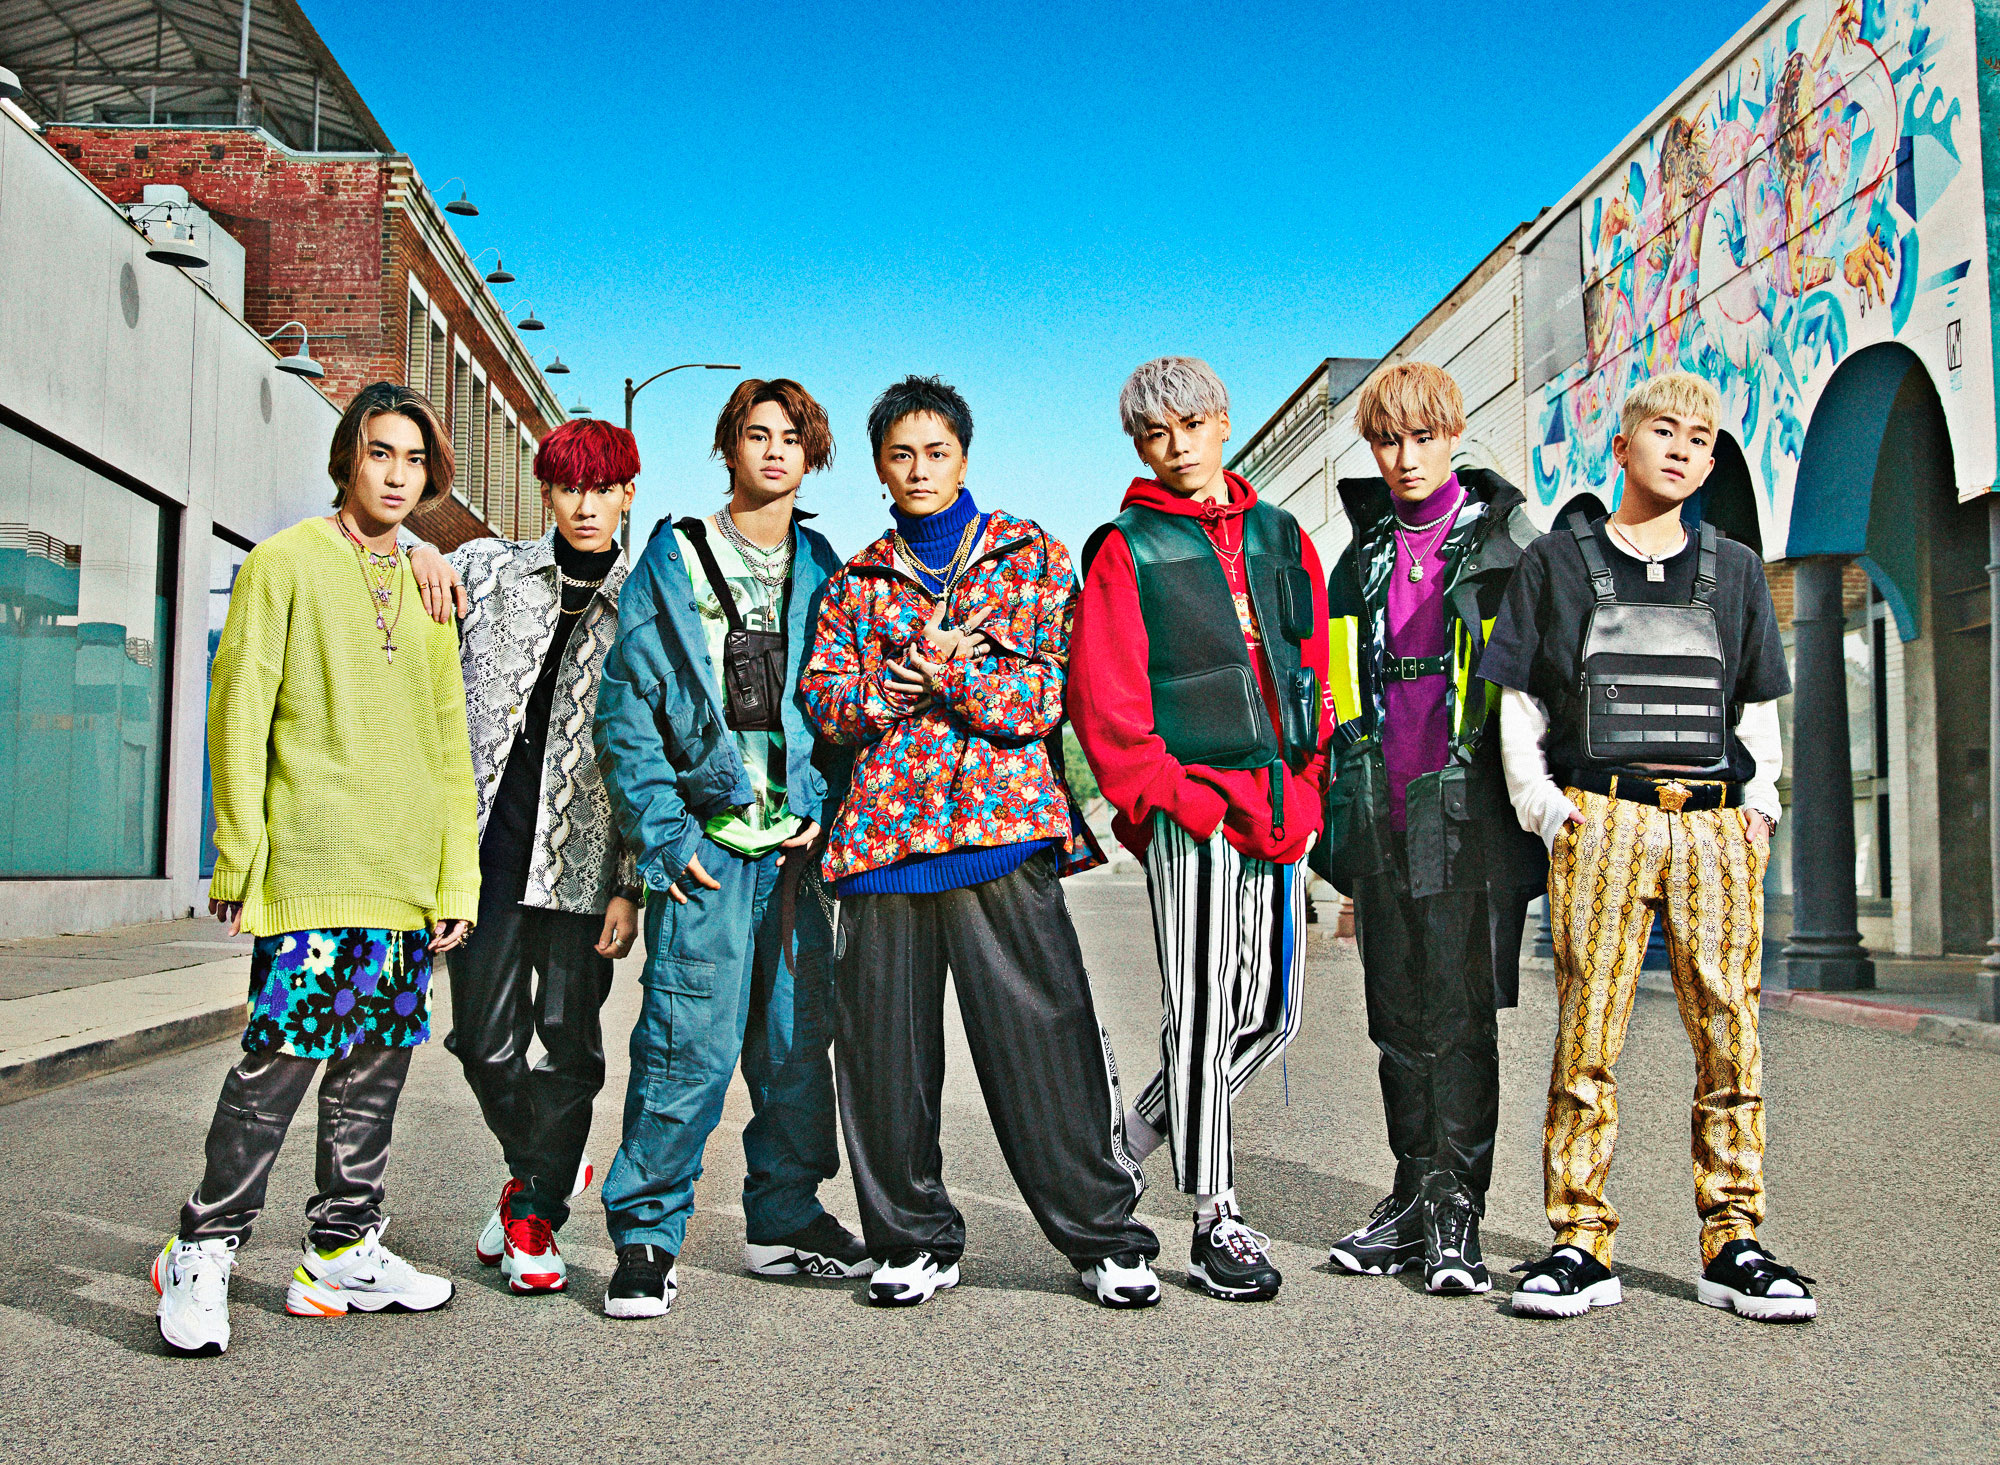 TAKAHIRO、BALLISTIK BOYZ from EXILE TRIBEがJ-WAVE LIVE 20th ANNIVERSARY EDITIONに出演決定!